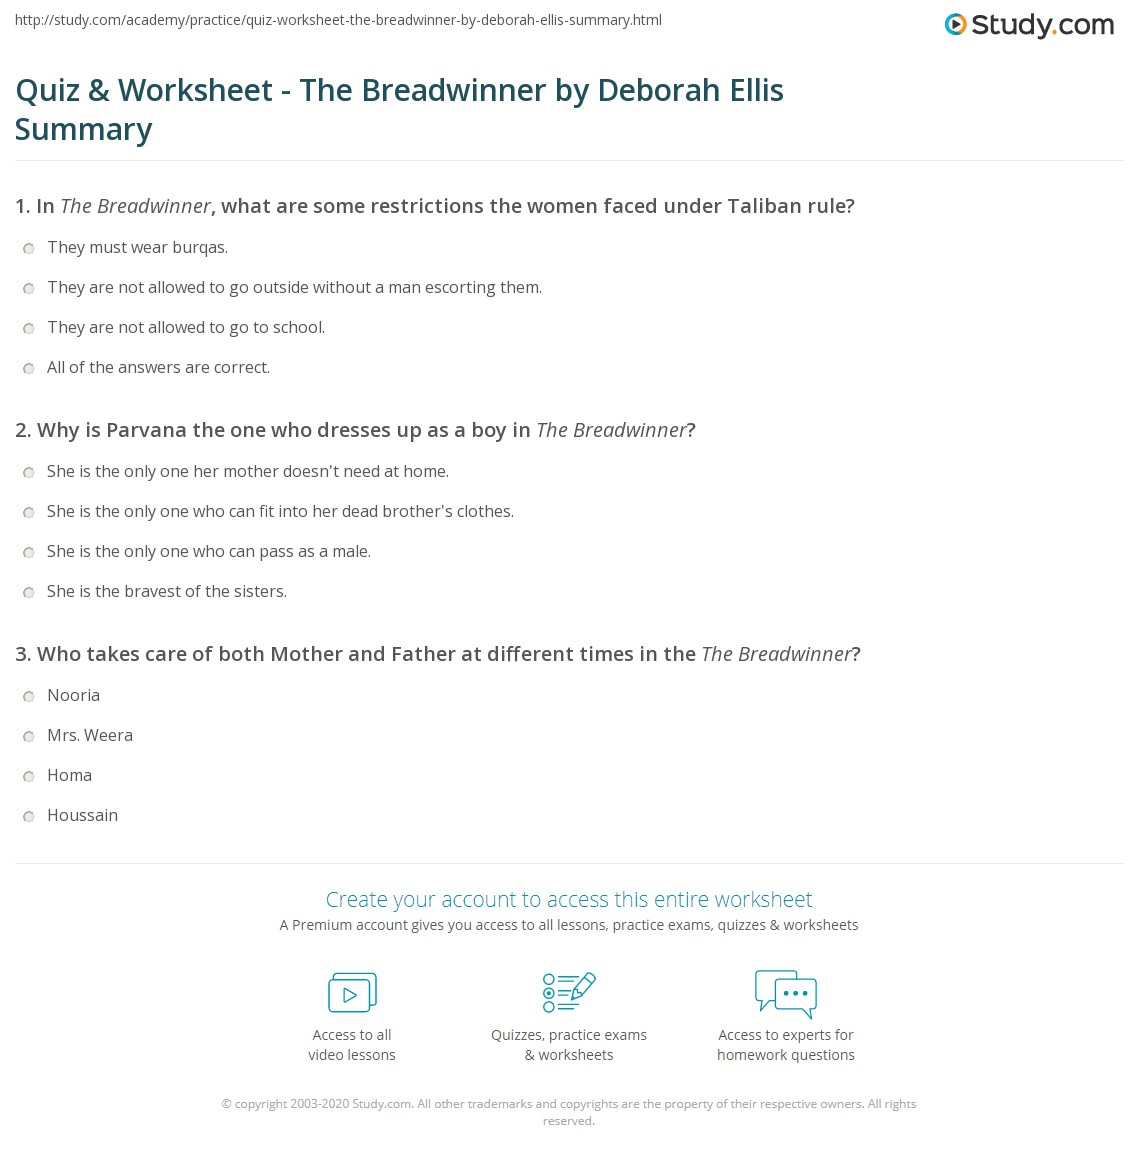 quiz worksheet the breadwinner by deborah ellis summary. Black Bedroom Furniture Sets. Home Design Ideas